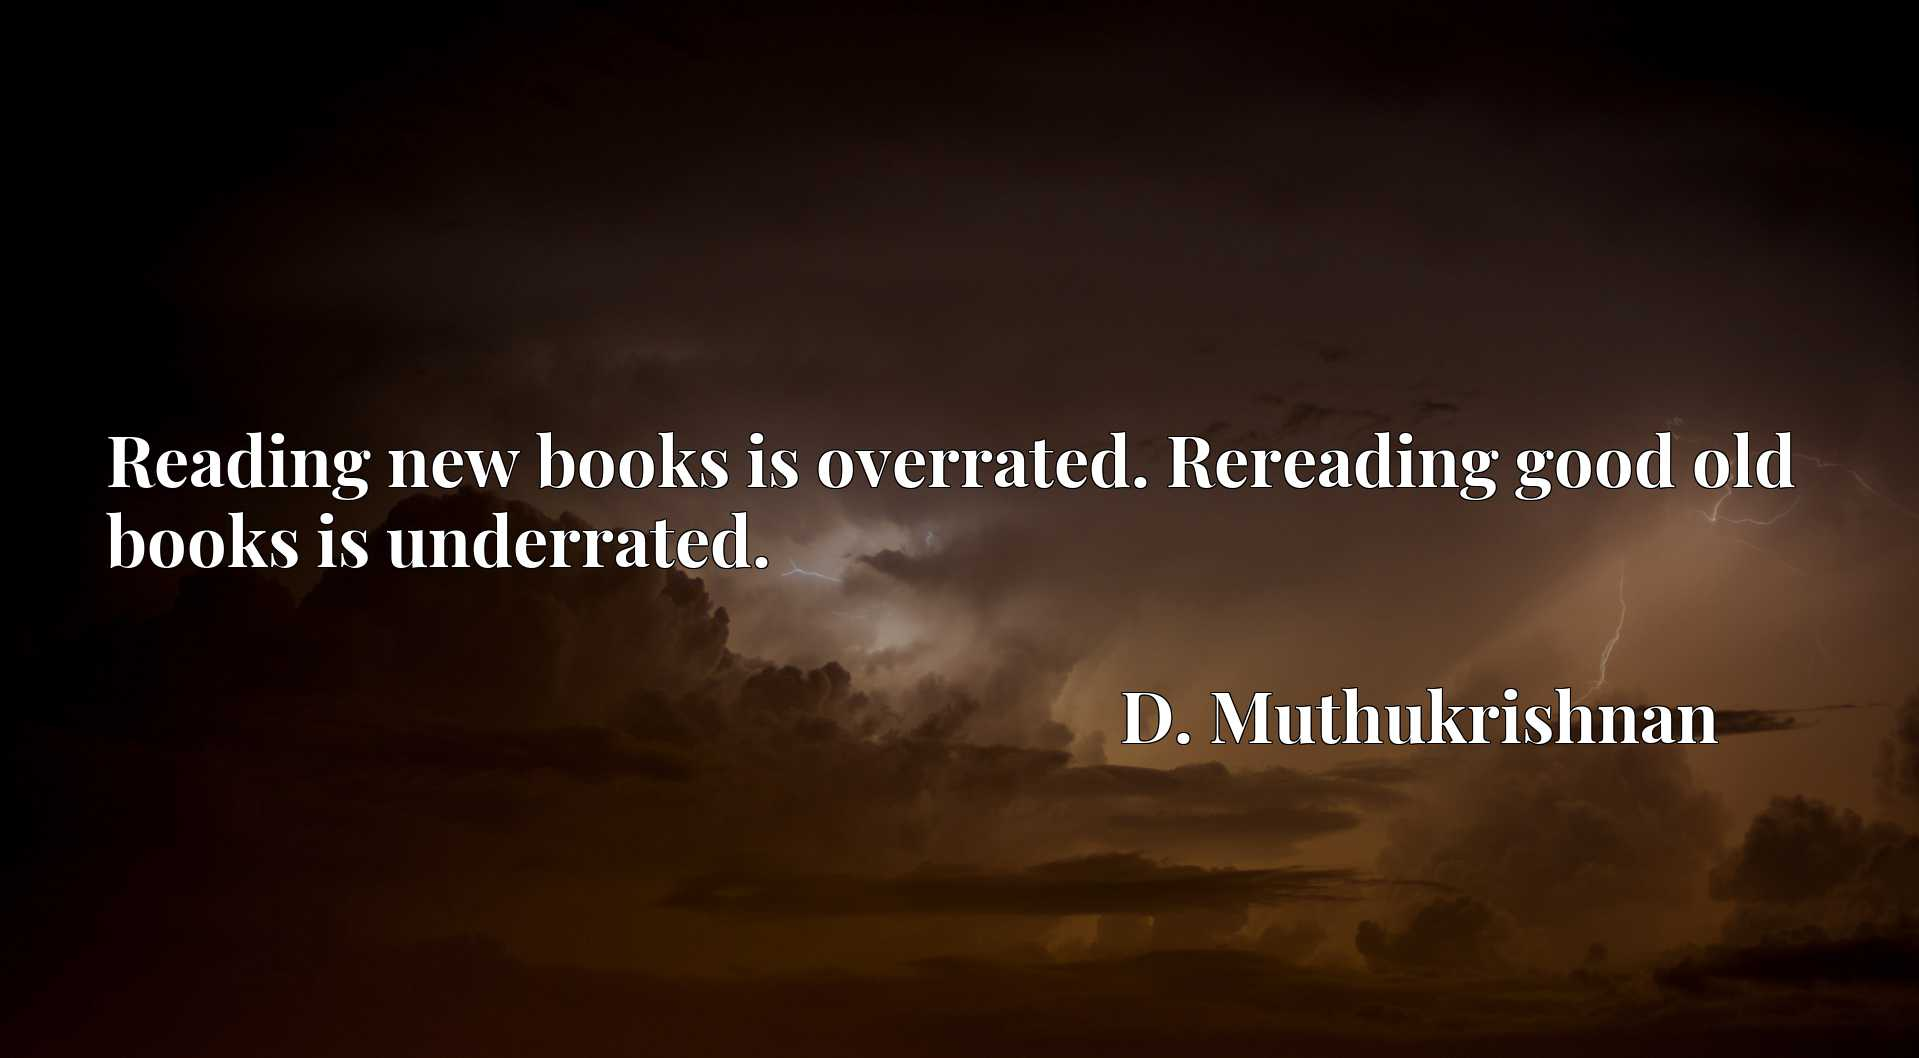 Reading new books is overrated. Rereading good old books is underrated.